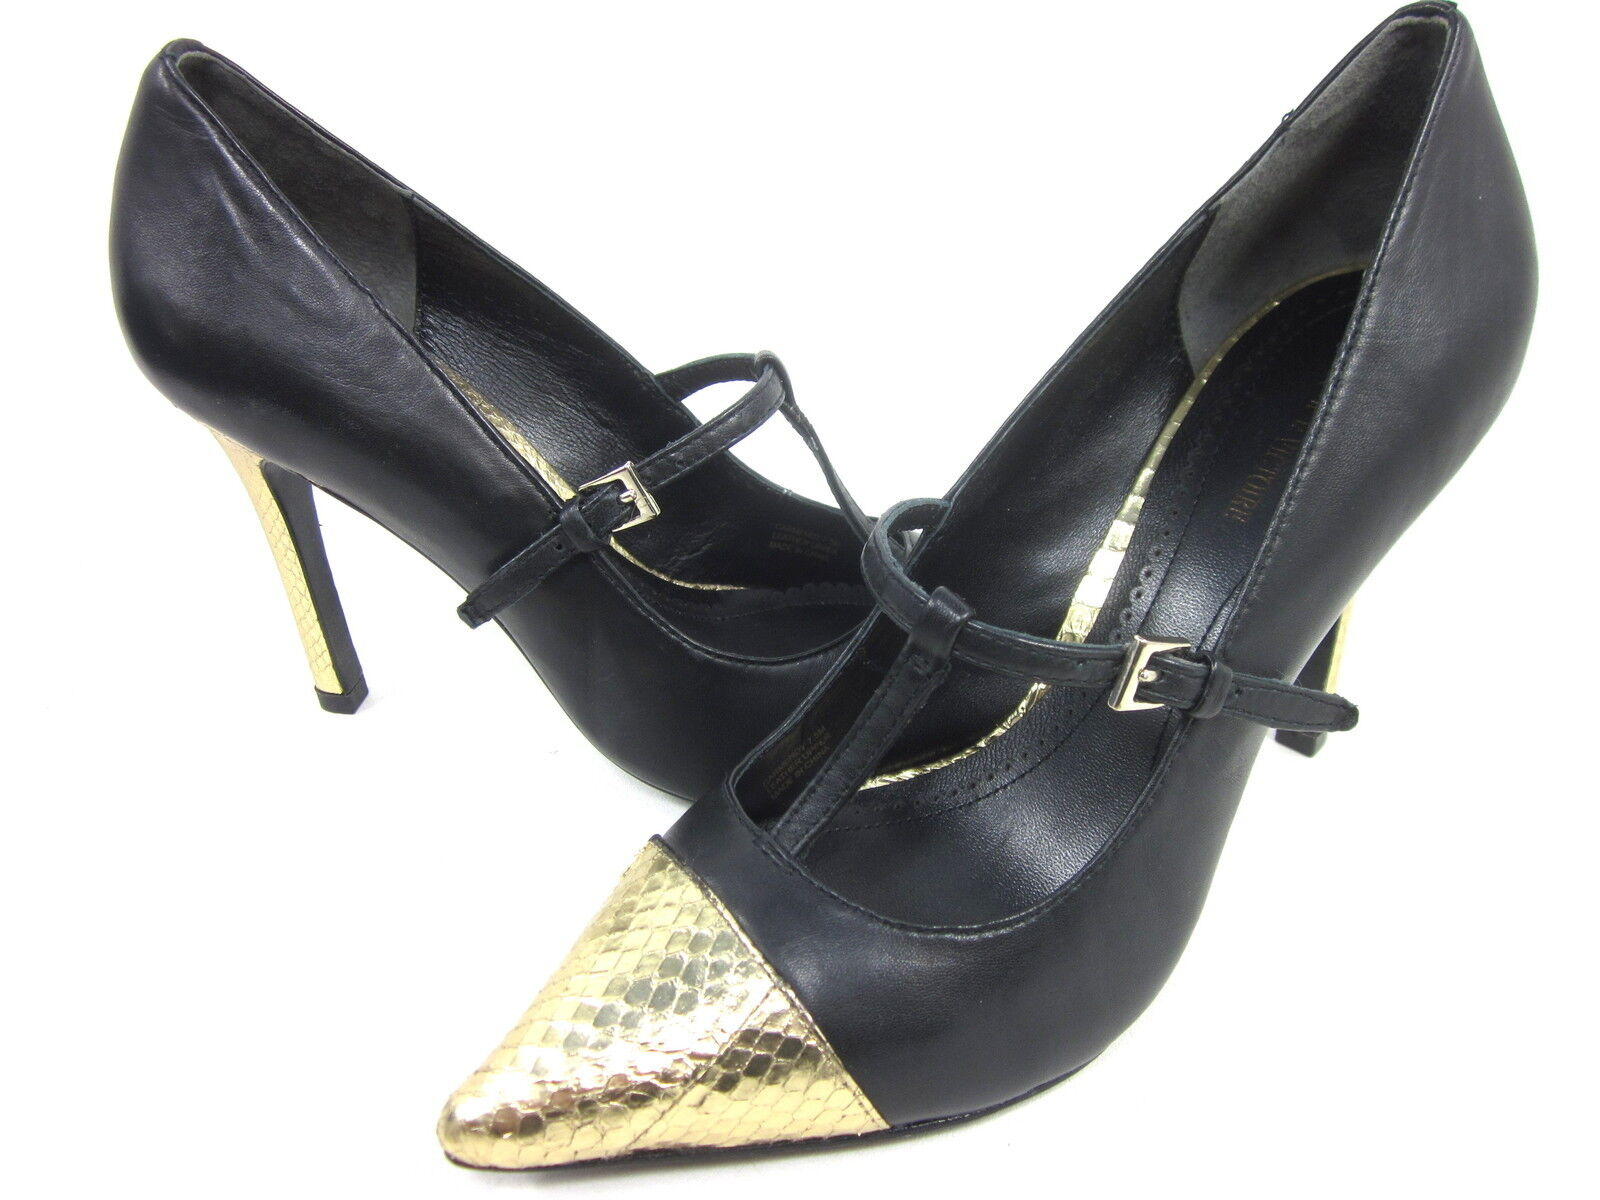 POUR LA VICTOIRE, CARMENDY PUMP, BLACK, Damenschuhe, US 7.5 7.5 7.5 M, EURO 37.5, NEW IN BOX 274585